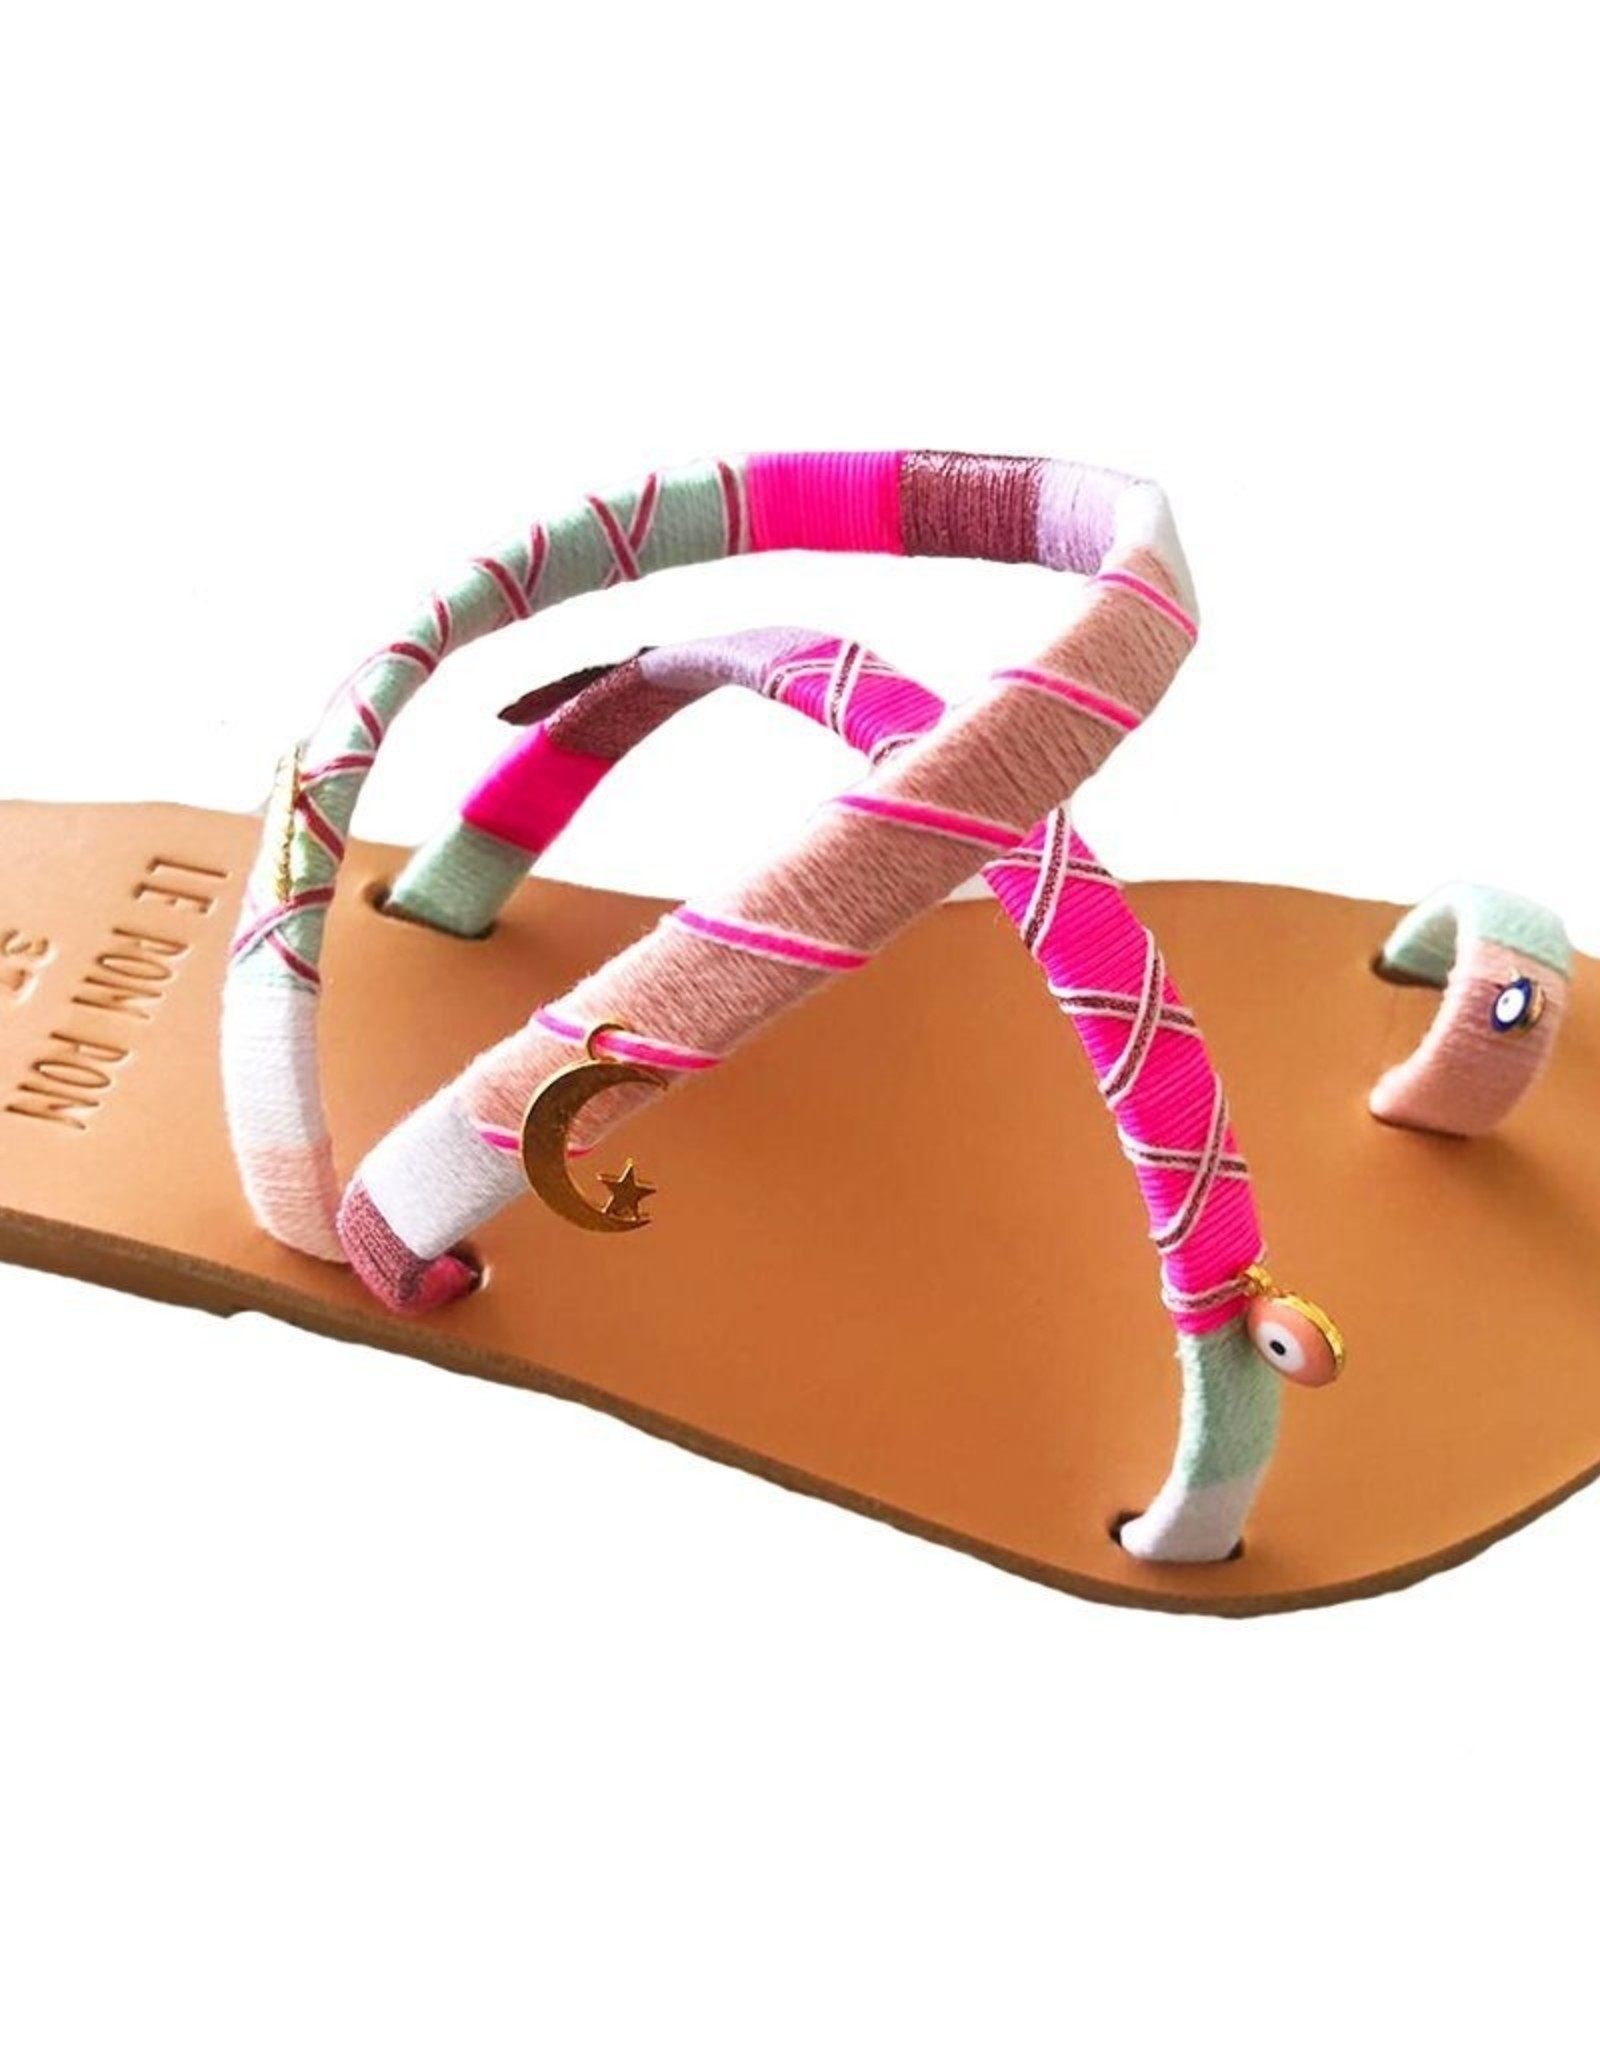 Handmade Greta Crossover Sandals with Charms